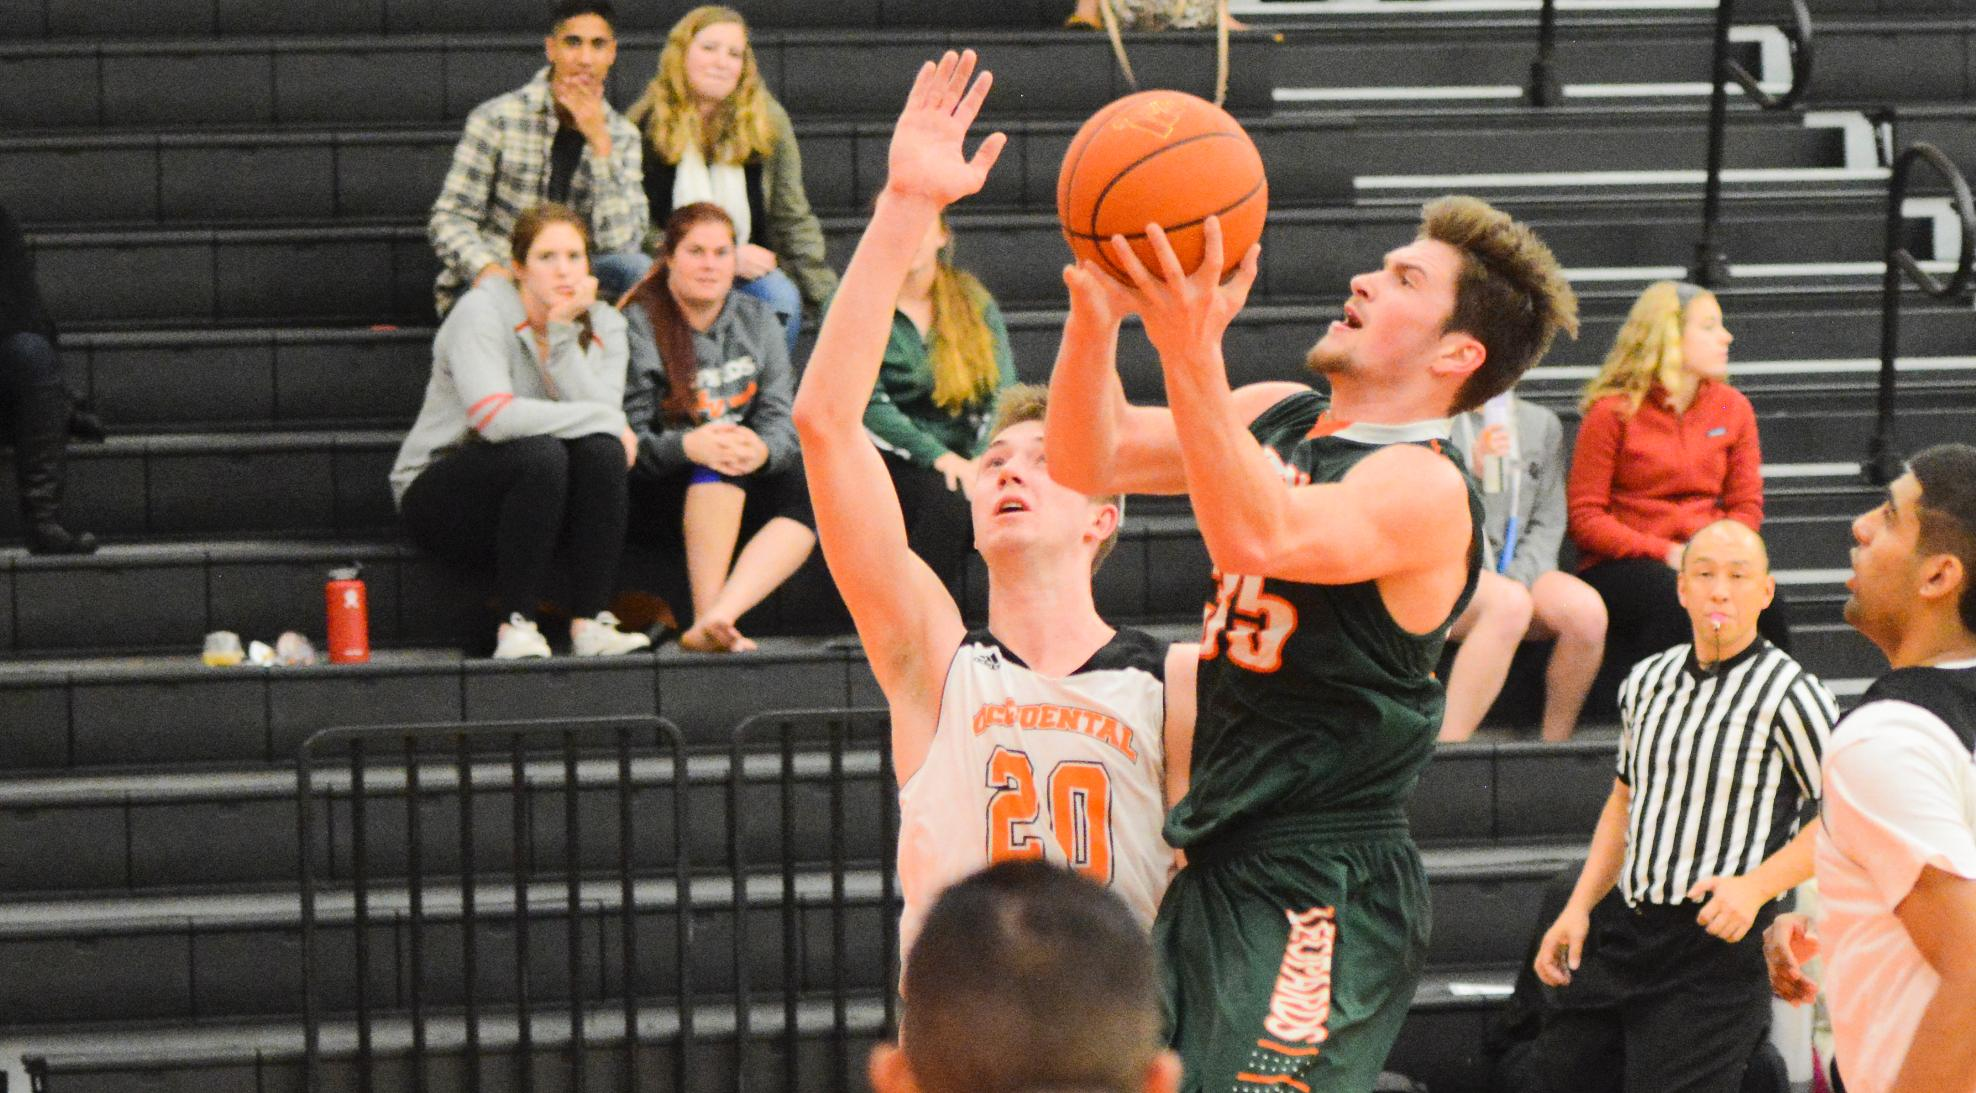 Men's Basketball squeaks out OT win at Oxy